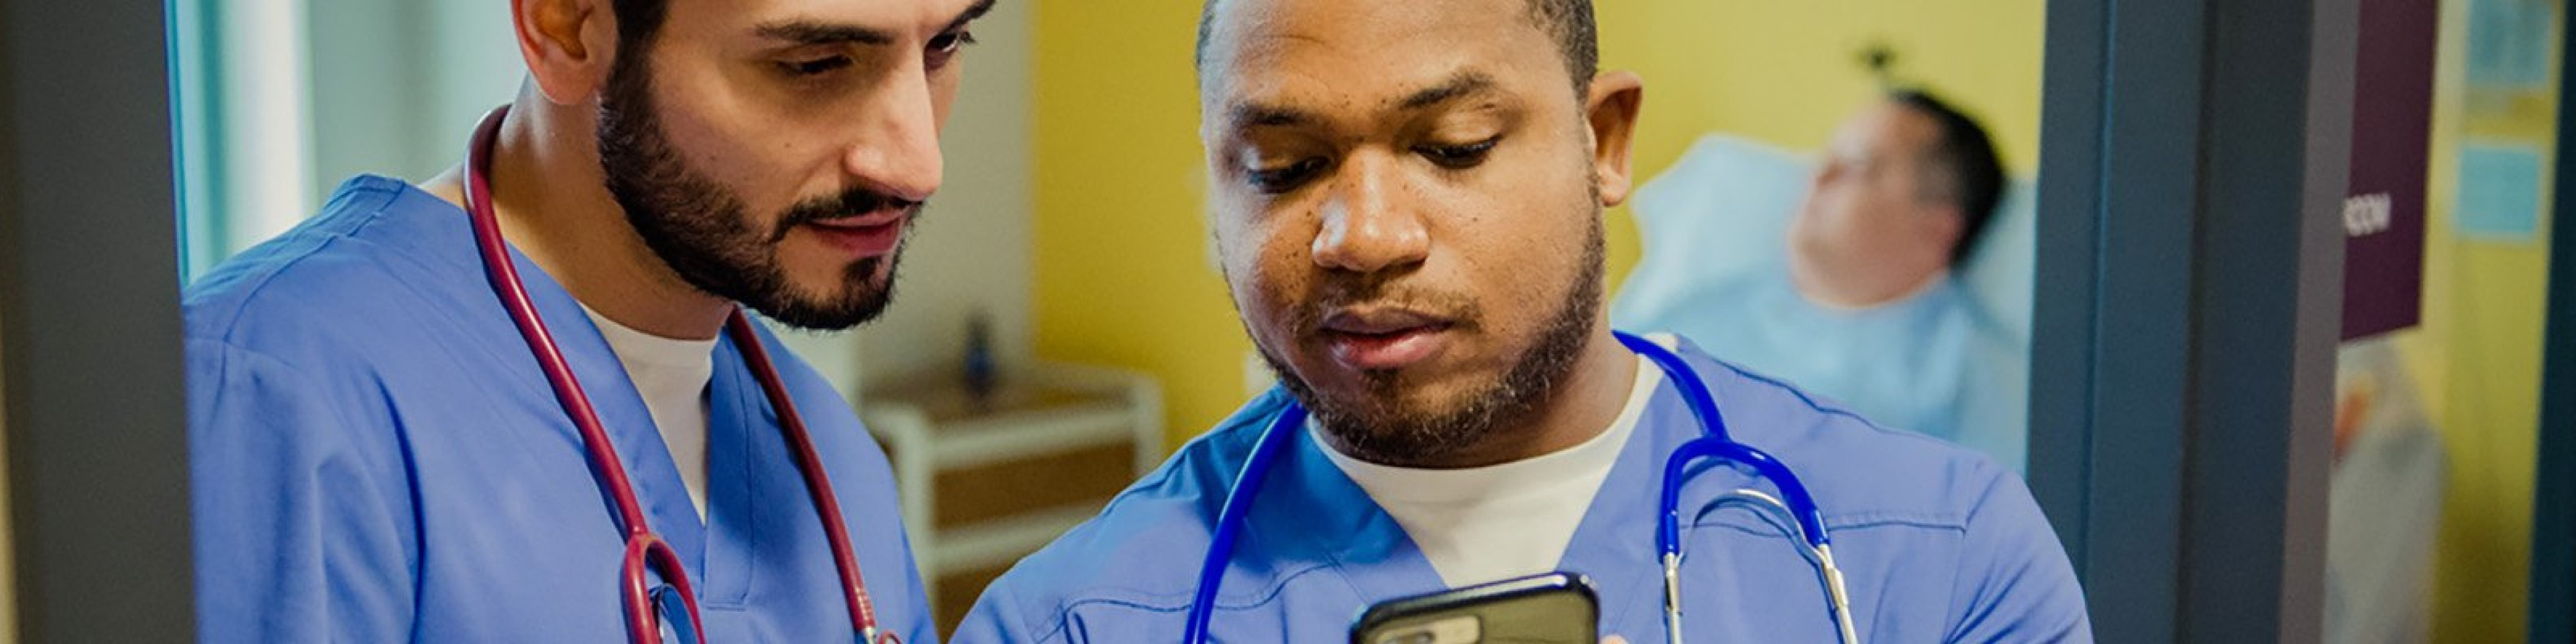 Doctors sharing information using a mobile device